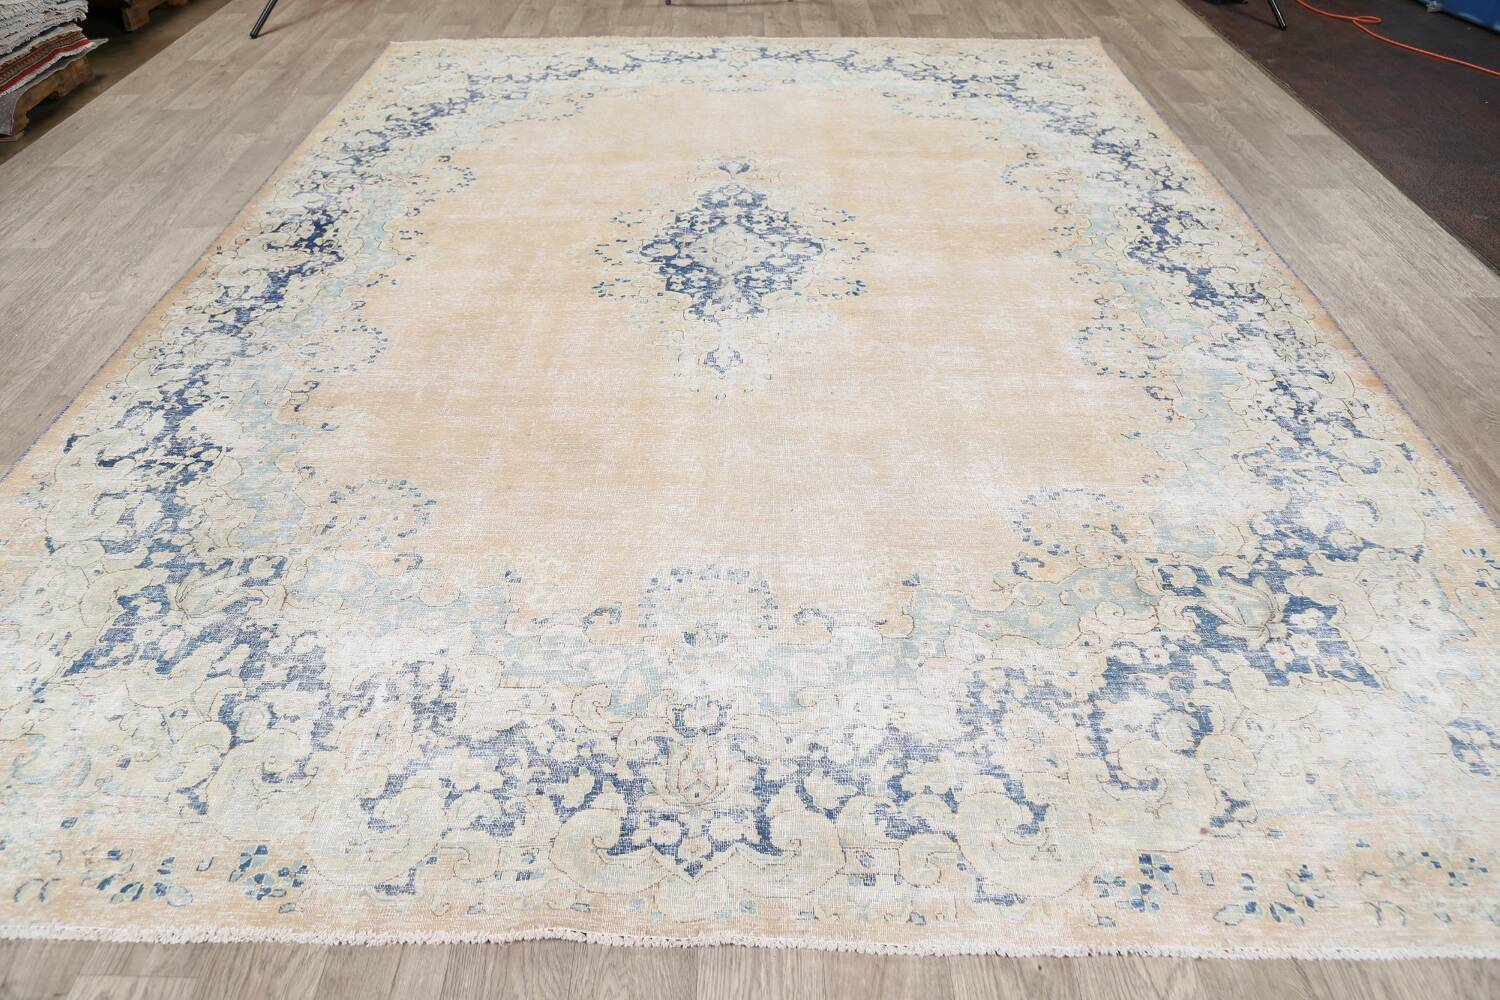 Antique Muted Floral Kerman Persian Area Rug 9x11 image 15